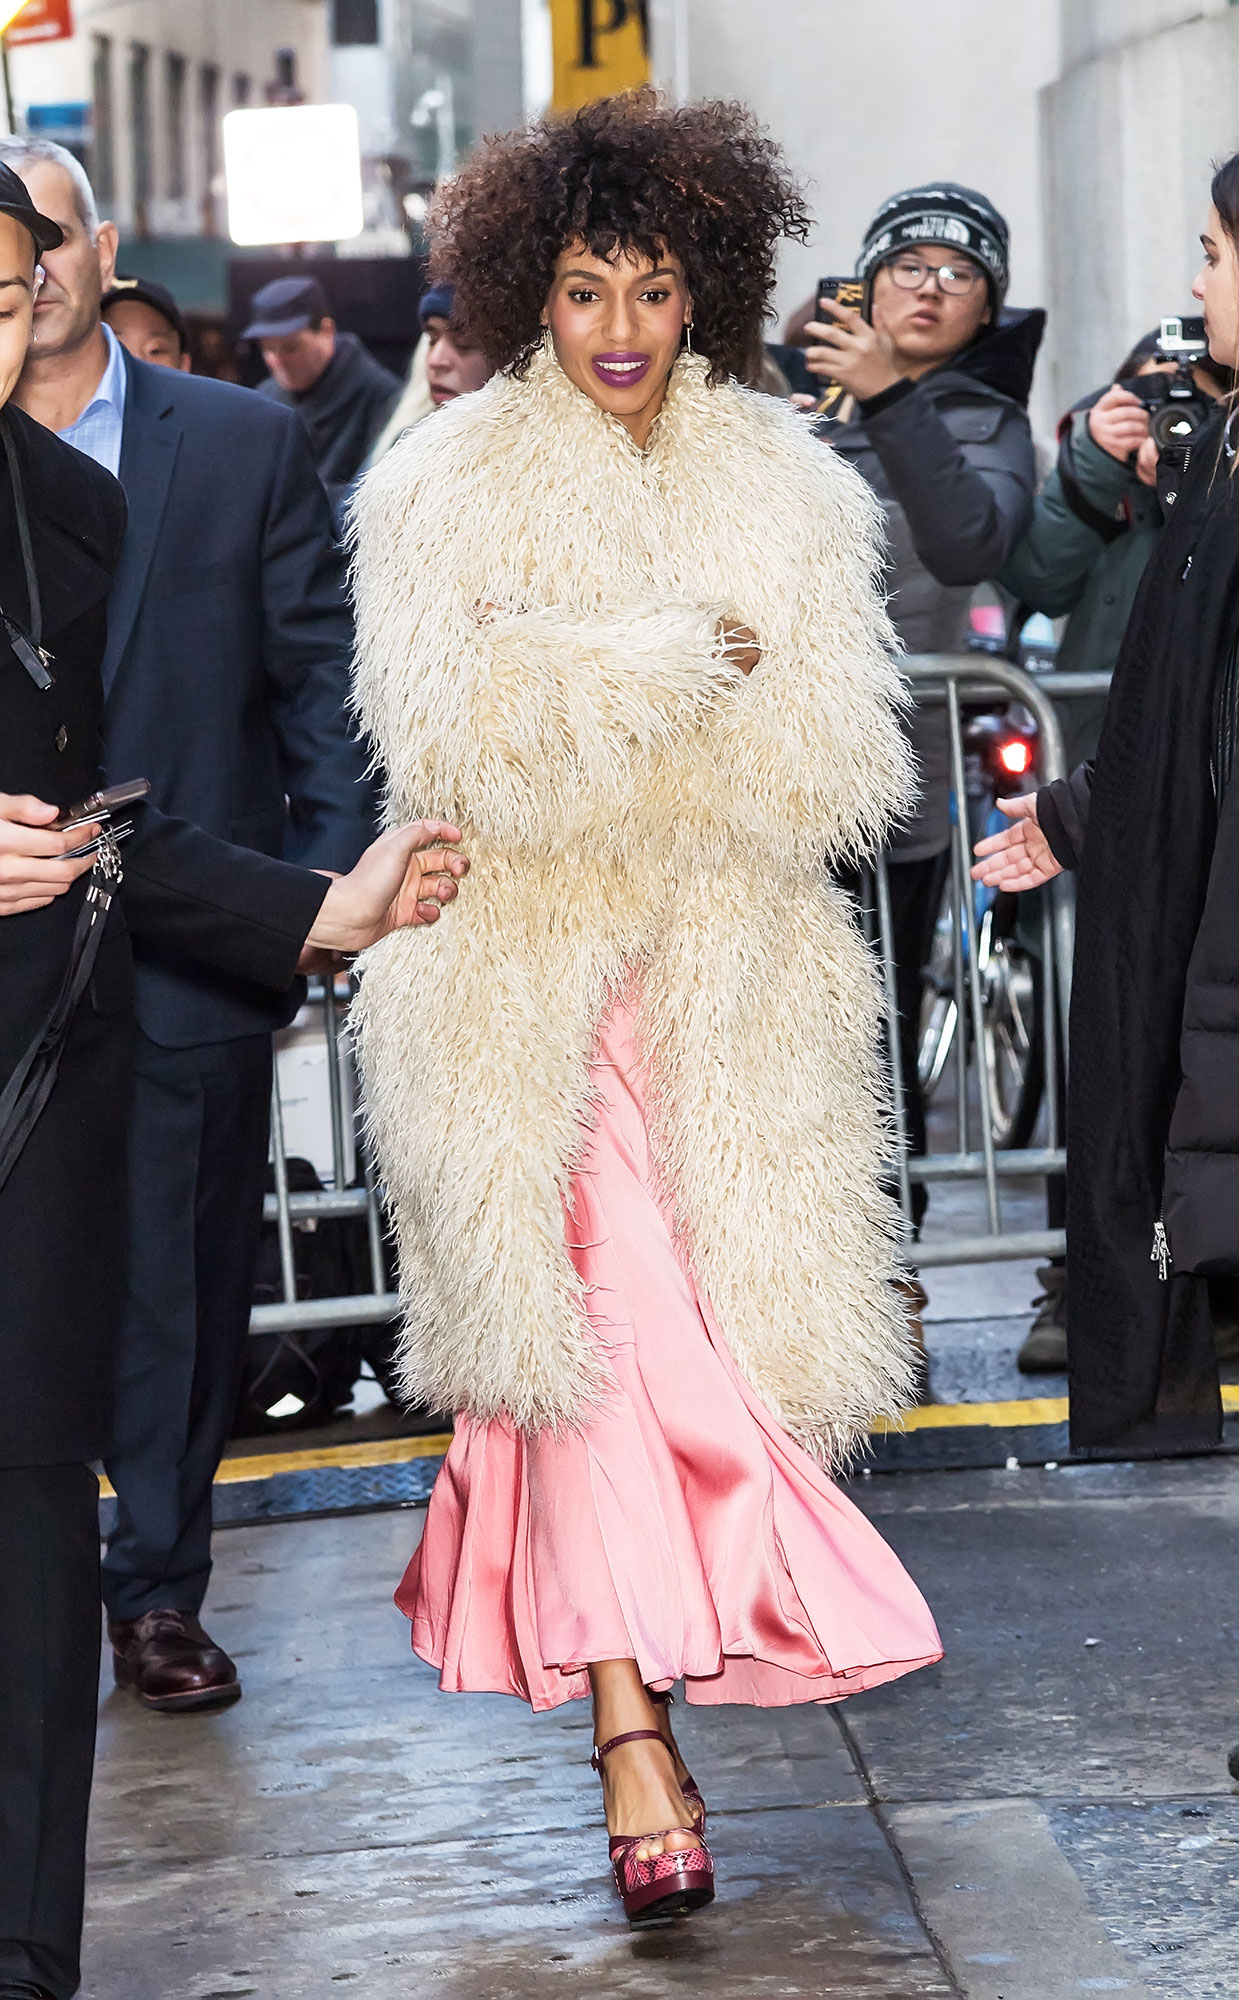 nyfw new york fashion week Kerry Washingto - Actress Kerry Washington is seen leaving the Michael Kors Fashion Show during New York Fashion Week at Cipriani Wall Street on February 13, 2019 in New York City.